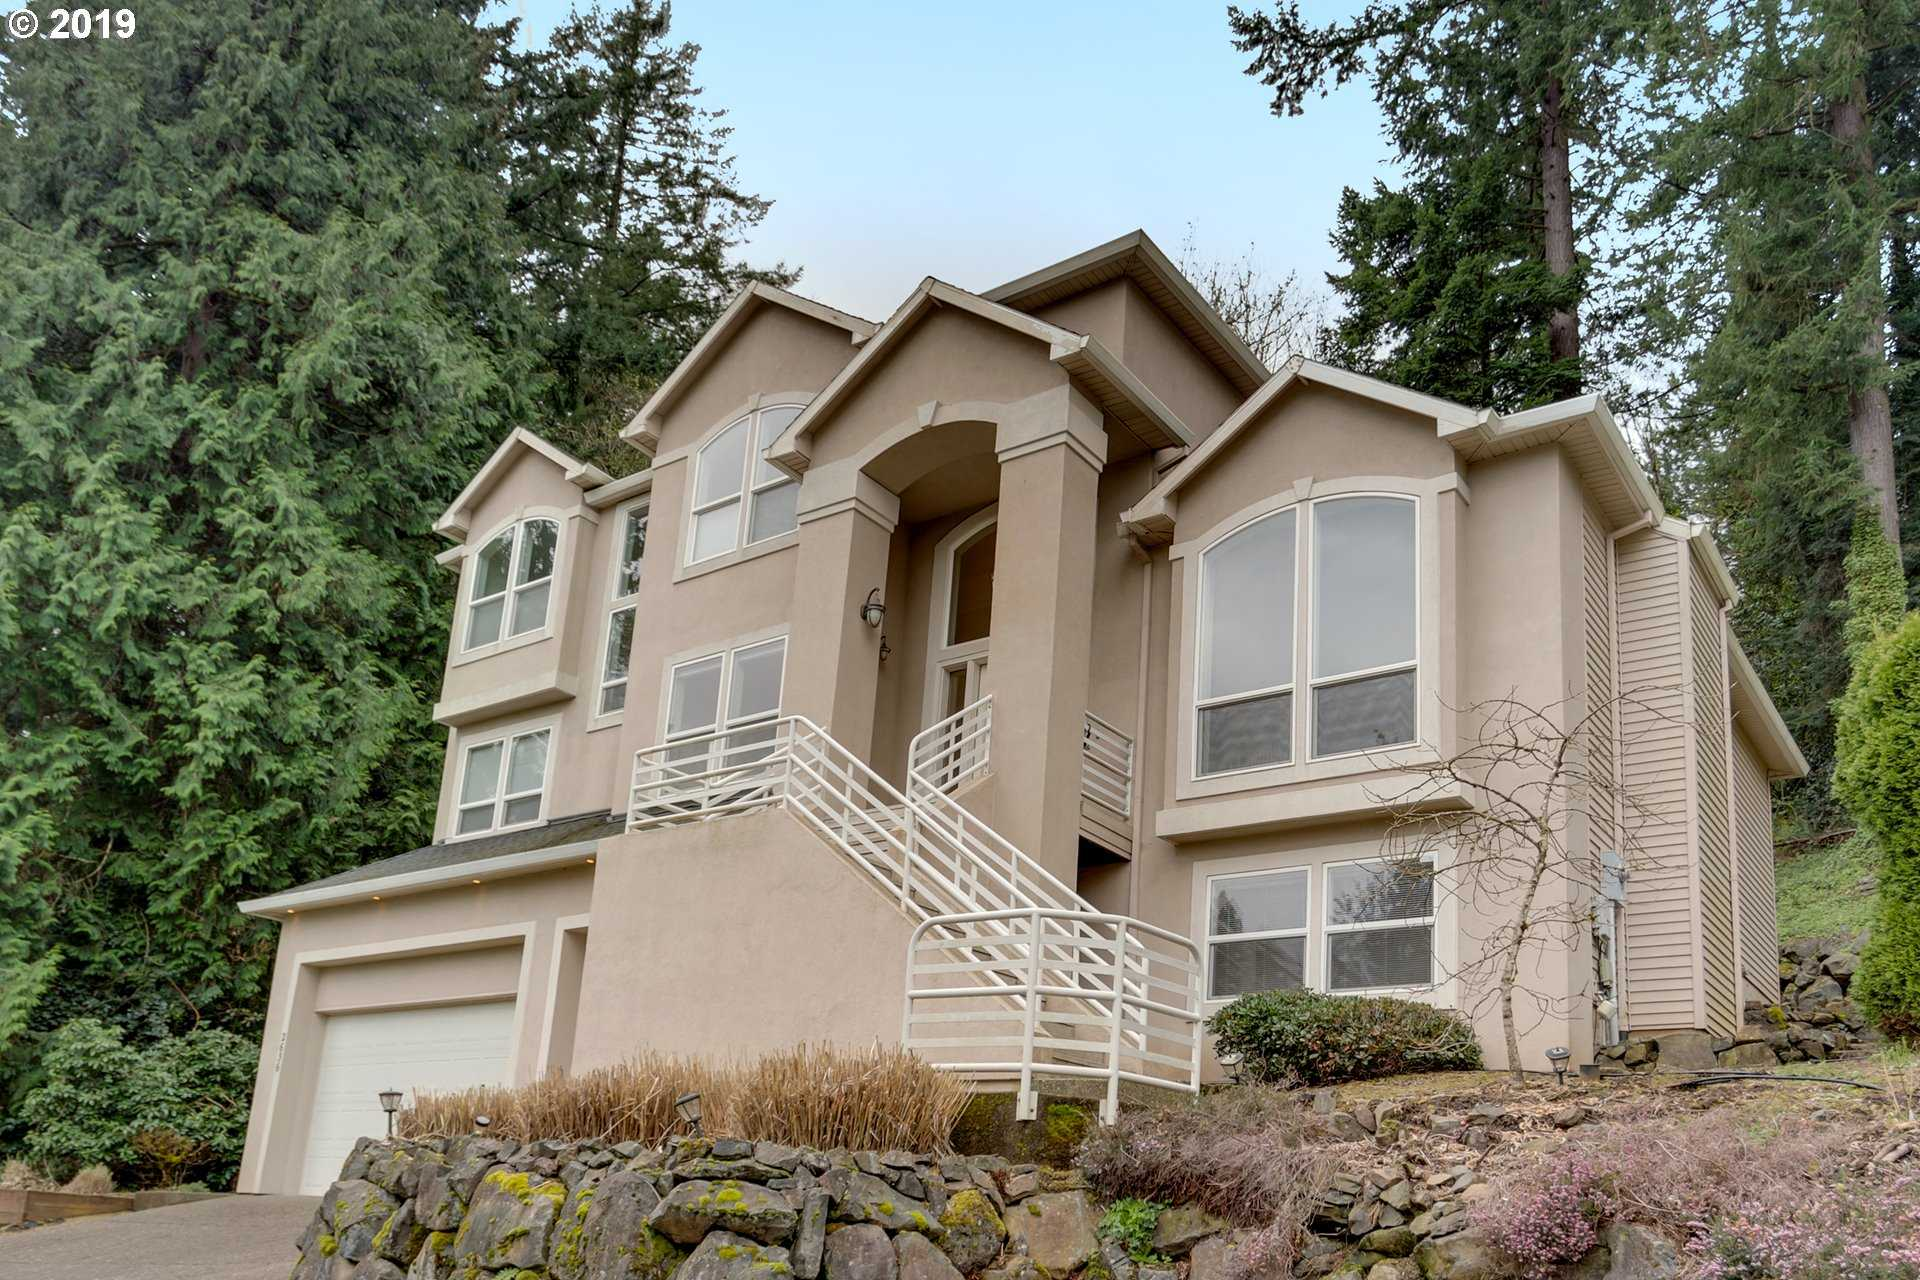 $728,000 - 4Br/4Ba -  for Sale in West Linn